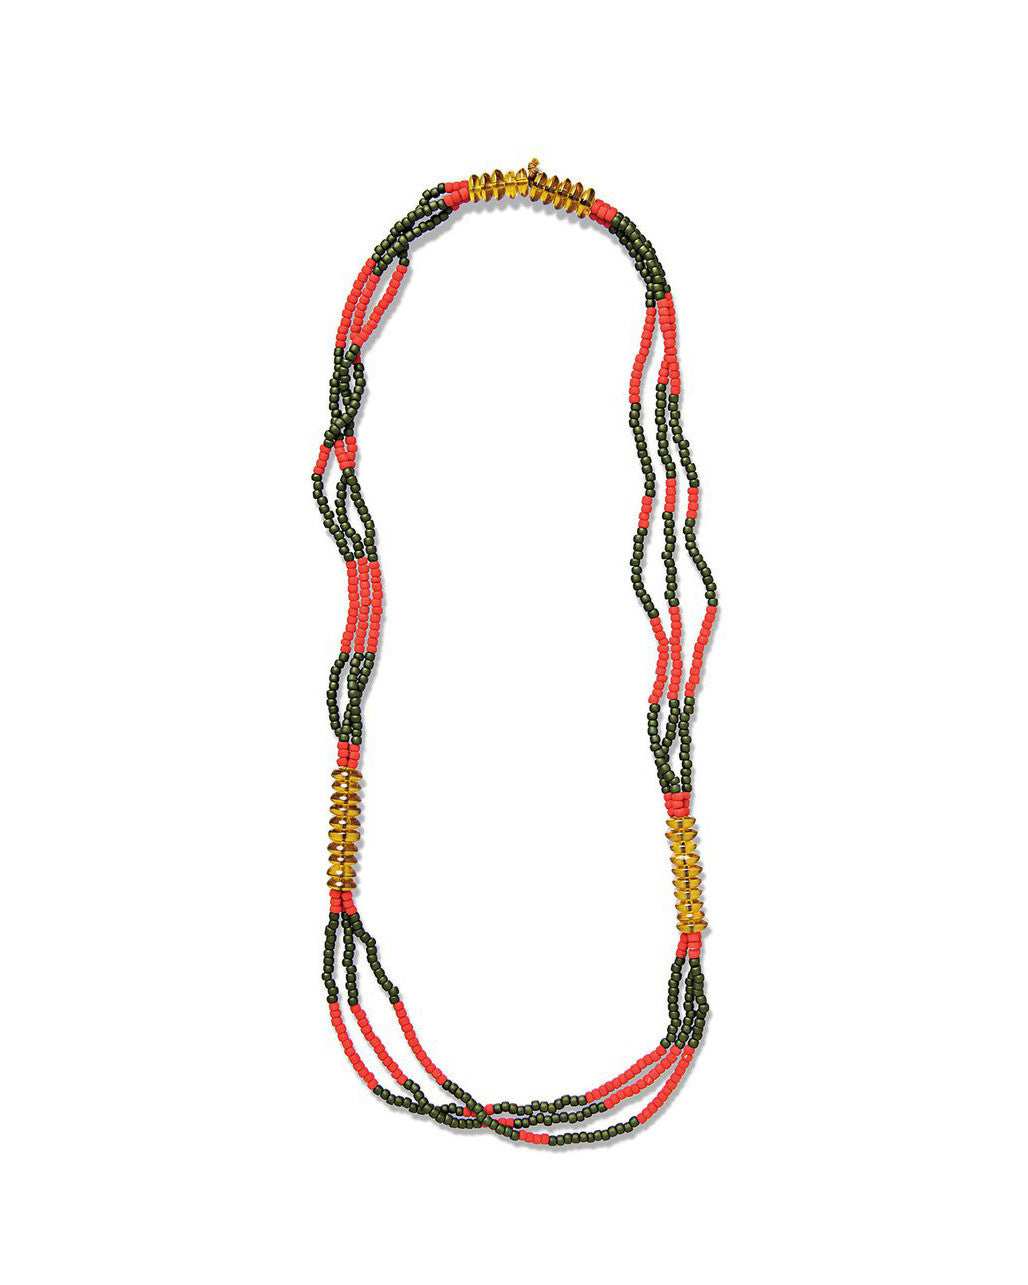 fortune goods vietnam montagnard olive and amber beaded necklace